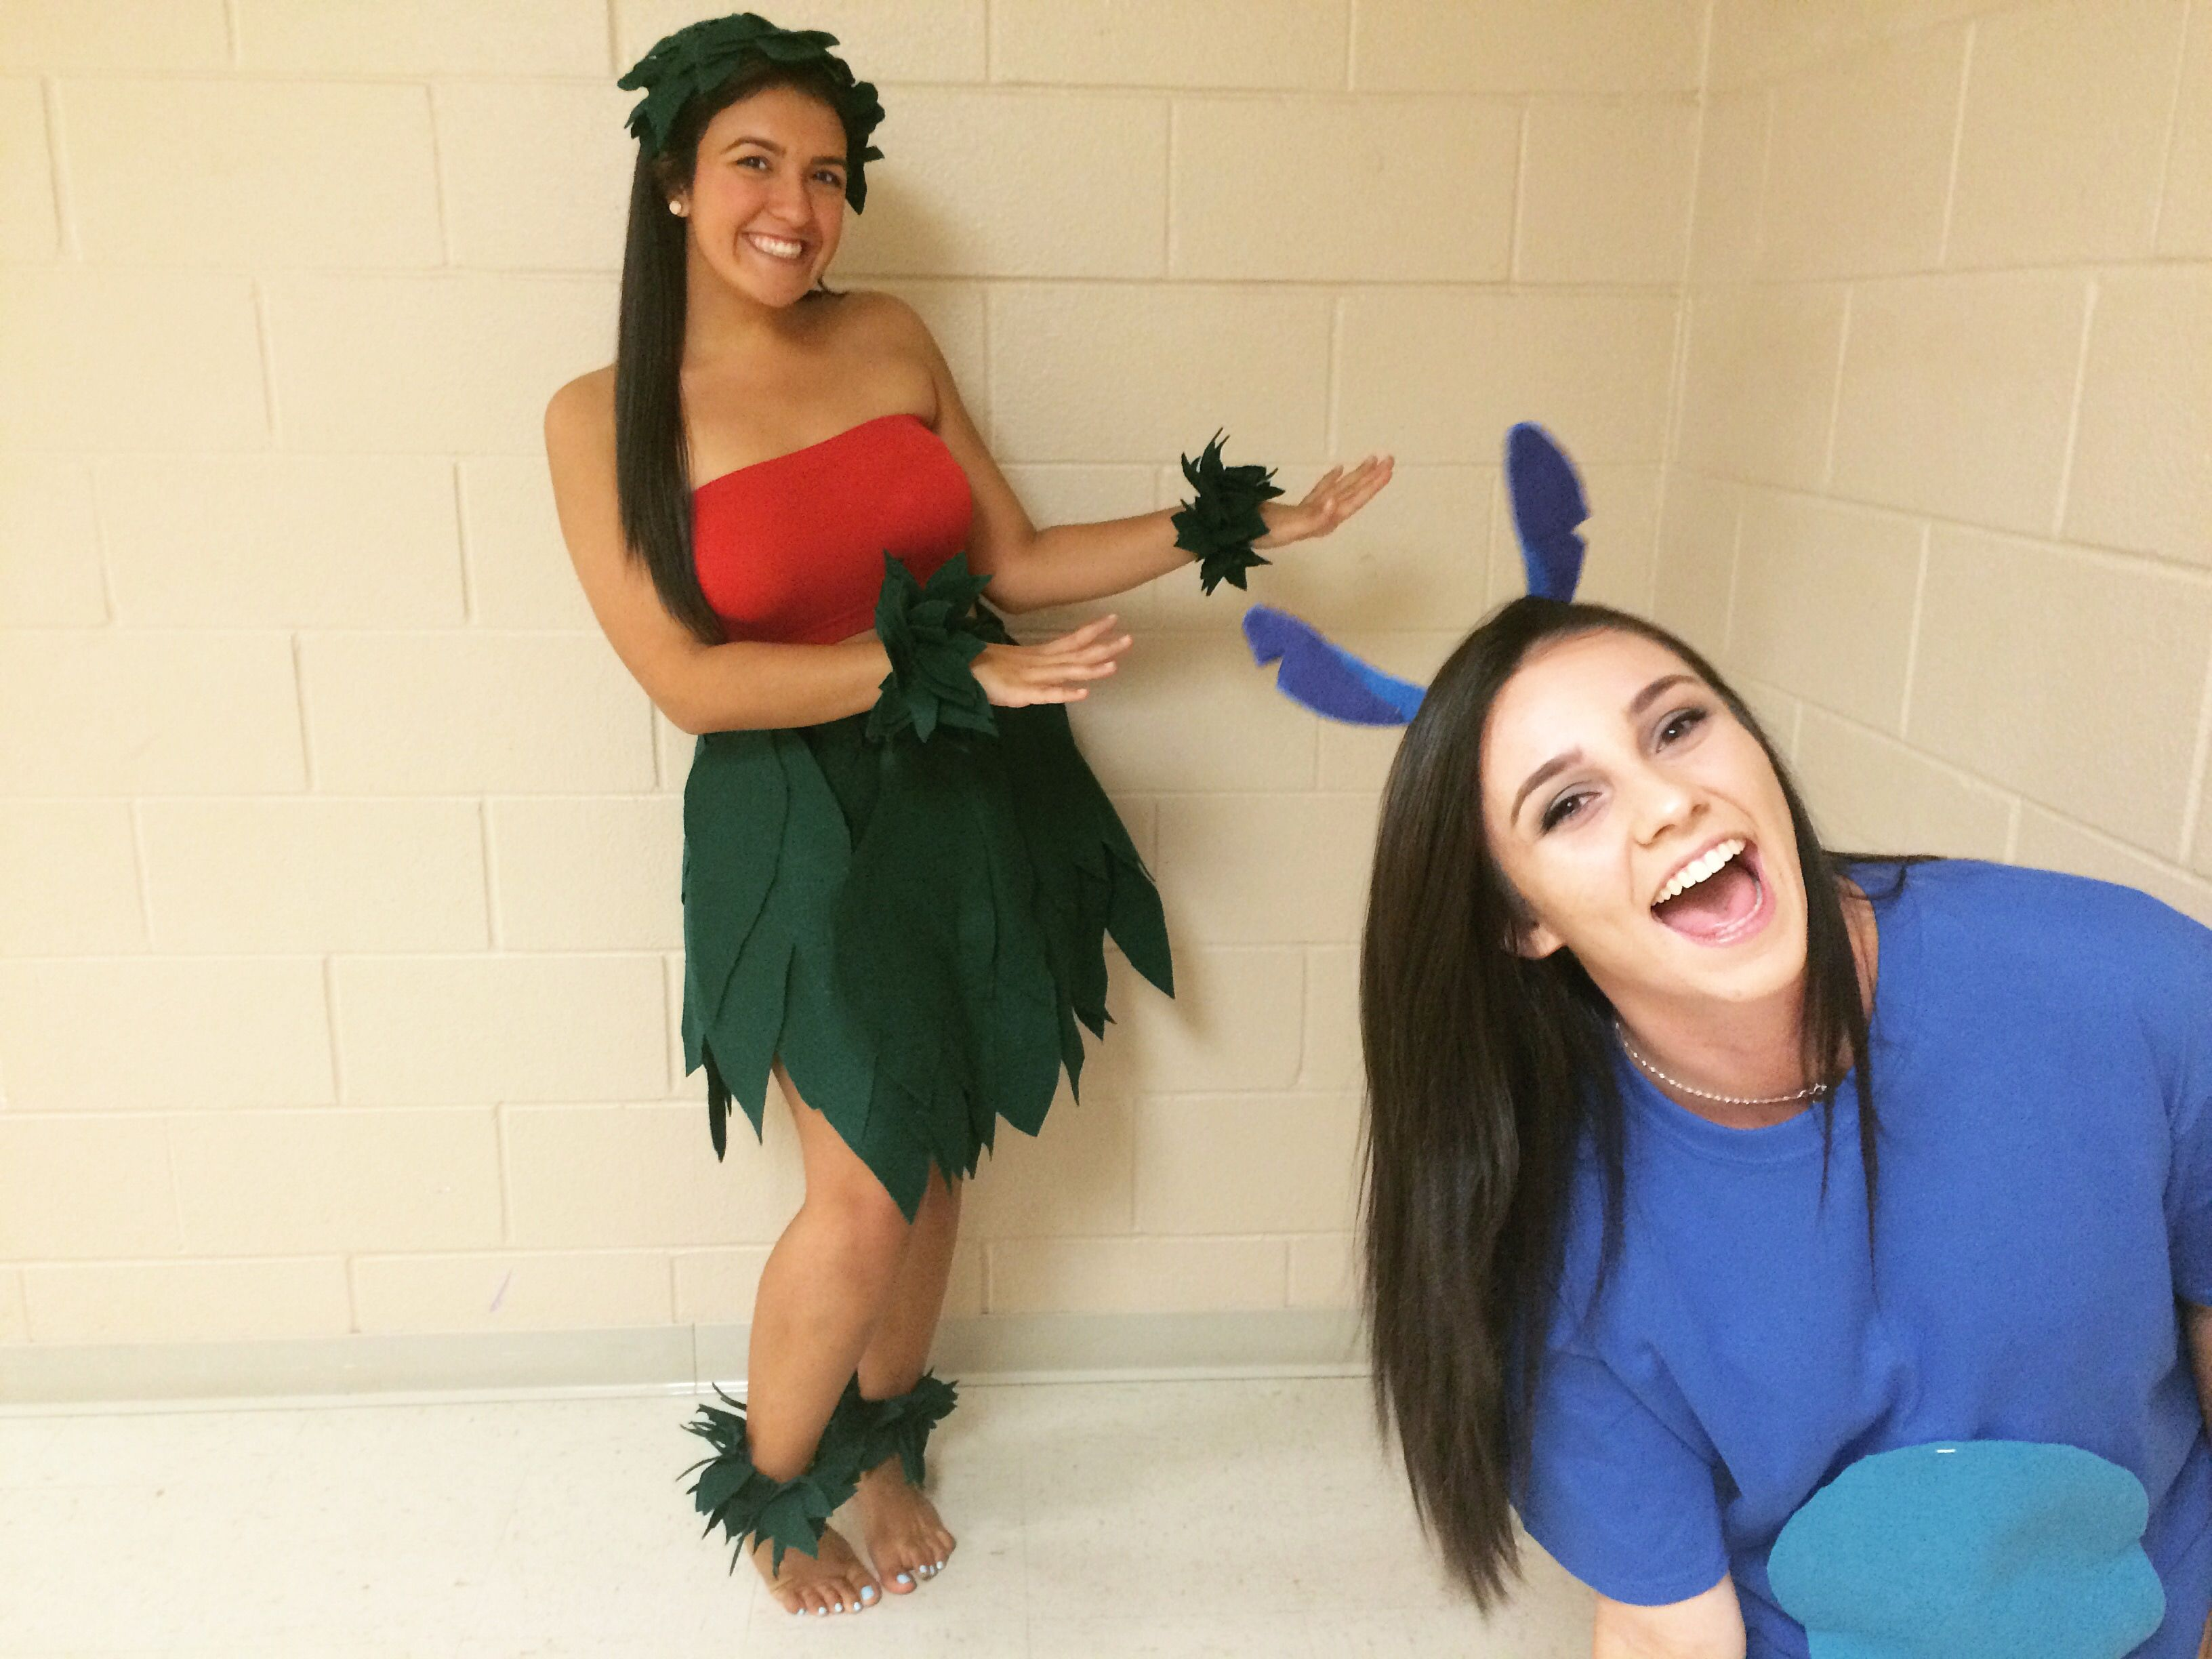 Lilo And Stitch Halloween Costume Stitch Halloween Costume Bff Halloween Costumes Lilo Costume